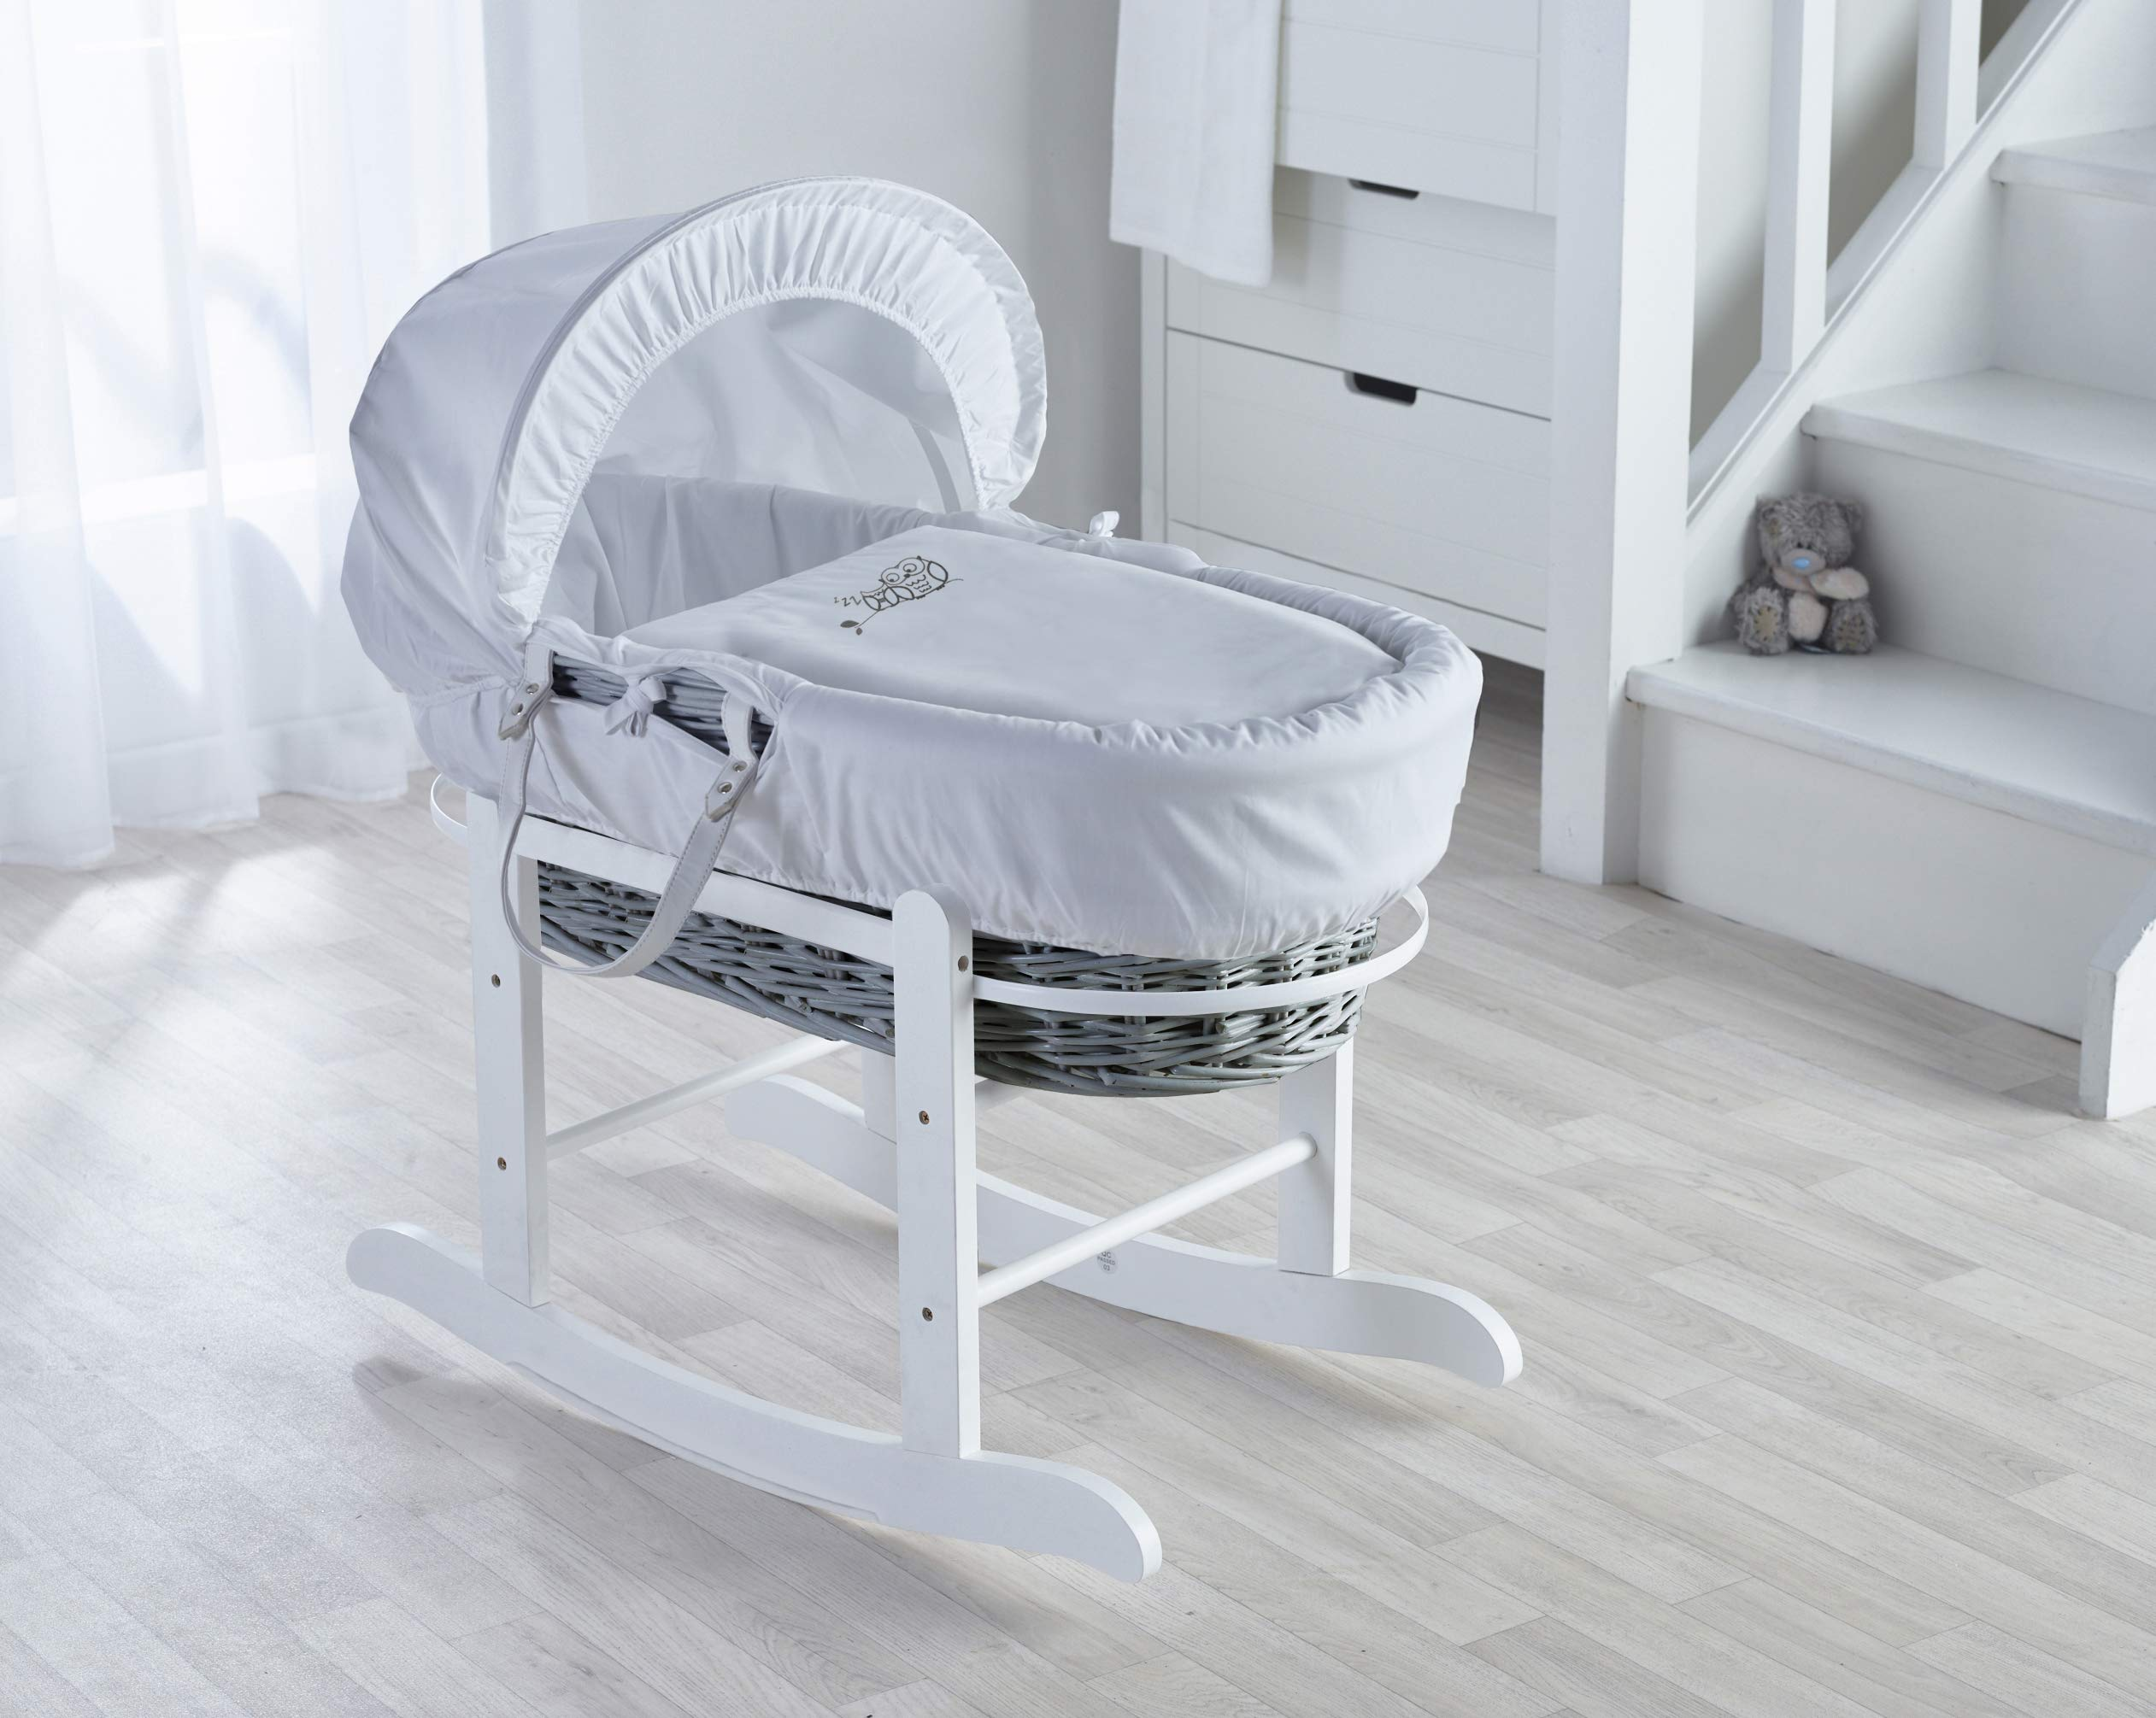 Sleepy Little Owl Moses Basket, Deluxe Rocking Stand and Starter Set Bundle Deal Elegant Baby Stylish Elegant Baby Exclusive moses basket Opulent cotton blend fabric with a luxurious soft padded surround Baby Essentials Bundle in white containing hooded towel, fleece blanket and cellular blanket 2